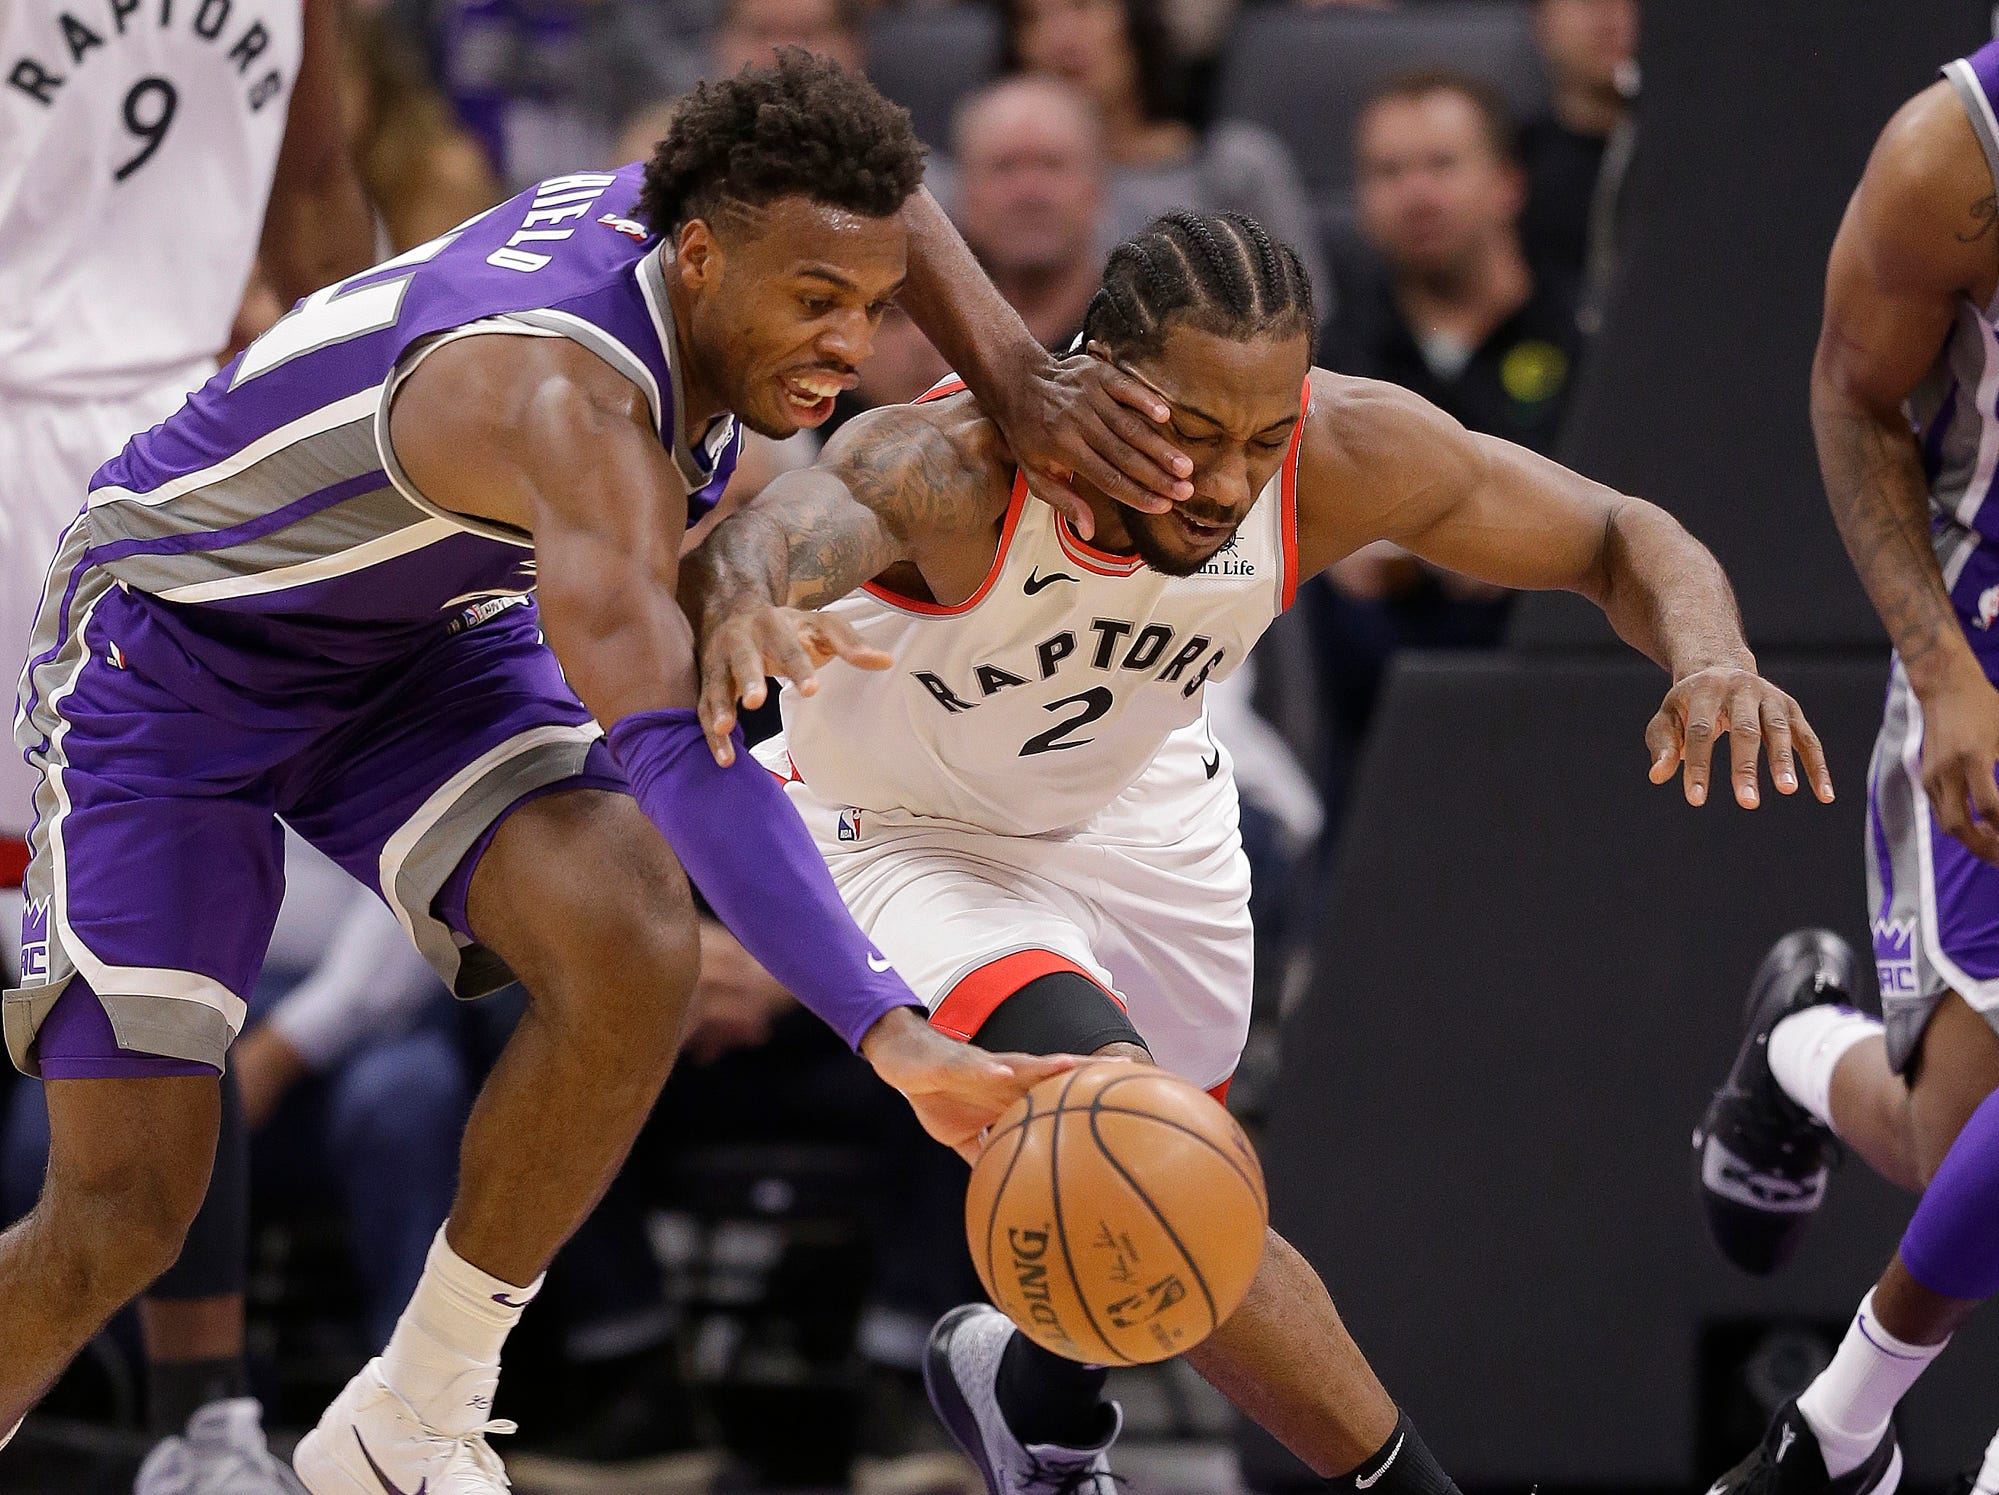 Sacramento Kings guard Buddy Hield, left, and Toronto Raptors forward Kawhi Leonard scramble for the ball during the second half of an NBA basketball game Wednesday, Nov. 7, 2018, in Sacramento, Calif. The Raptors won 114-105.  (AP Photo/Rich Pedroncelli)